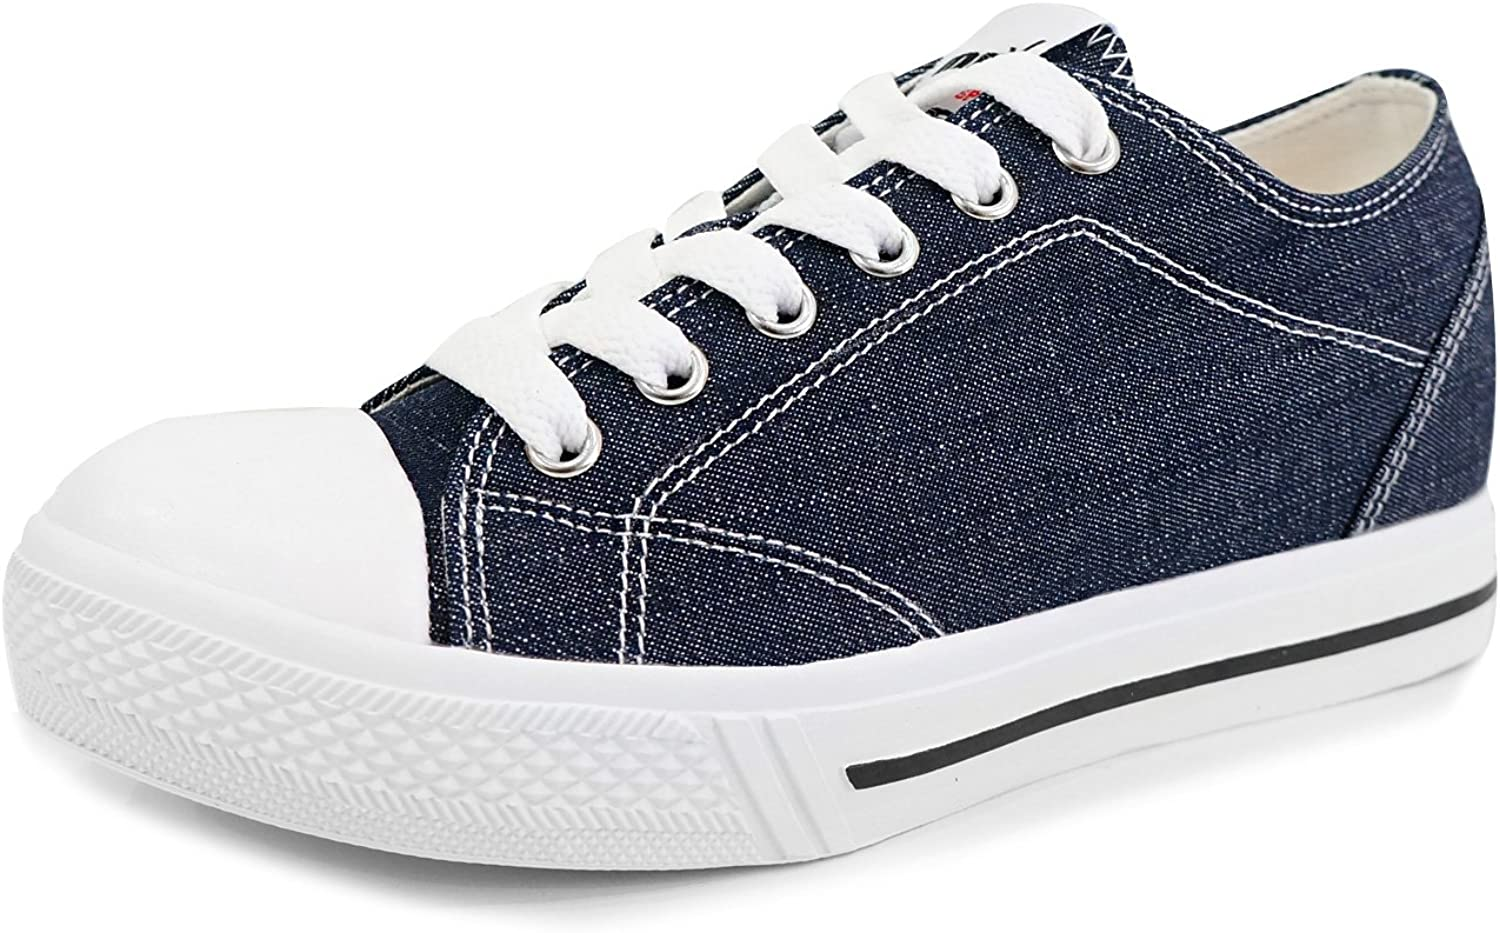 MNX15 Women's Elevator shoes Height Increase 1.9  Spotty Navy